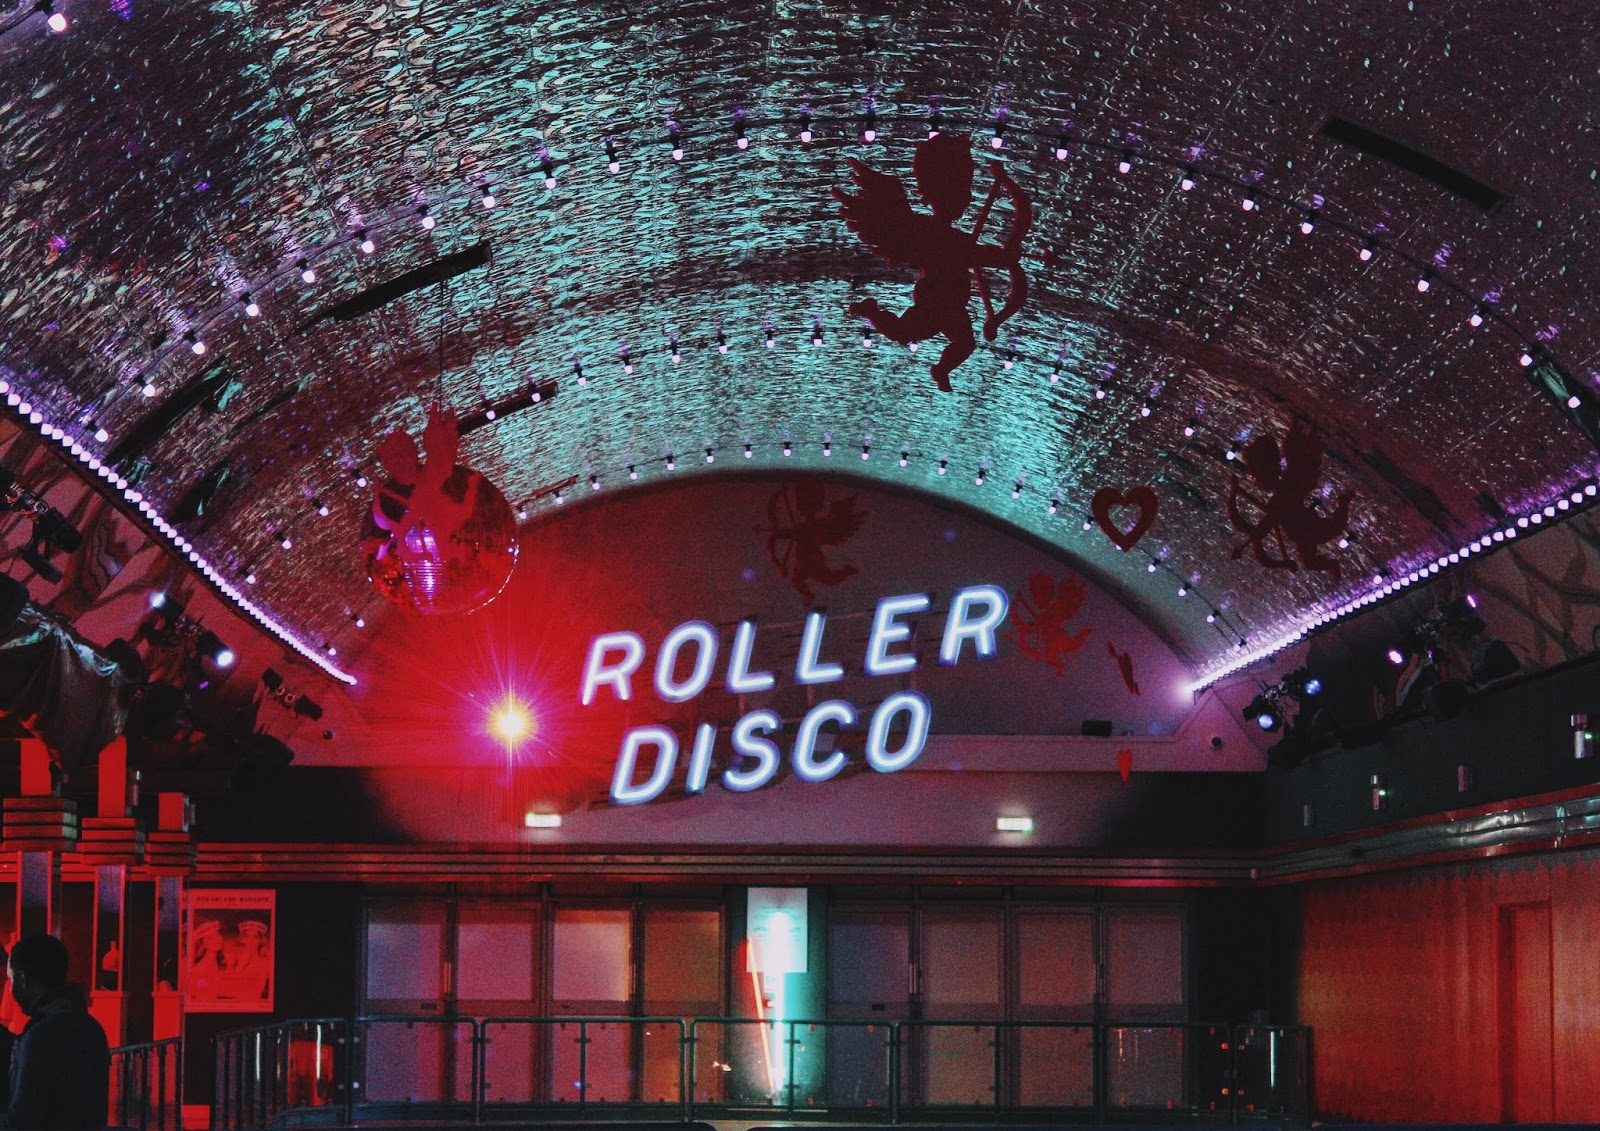 dreamlands roller disco inside the arcade and diner area